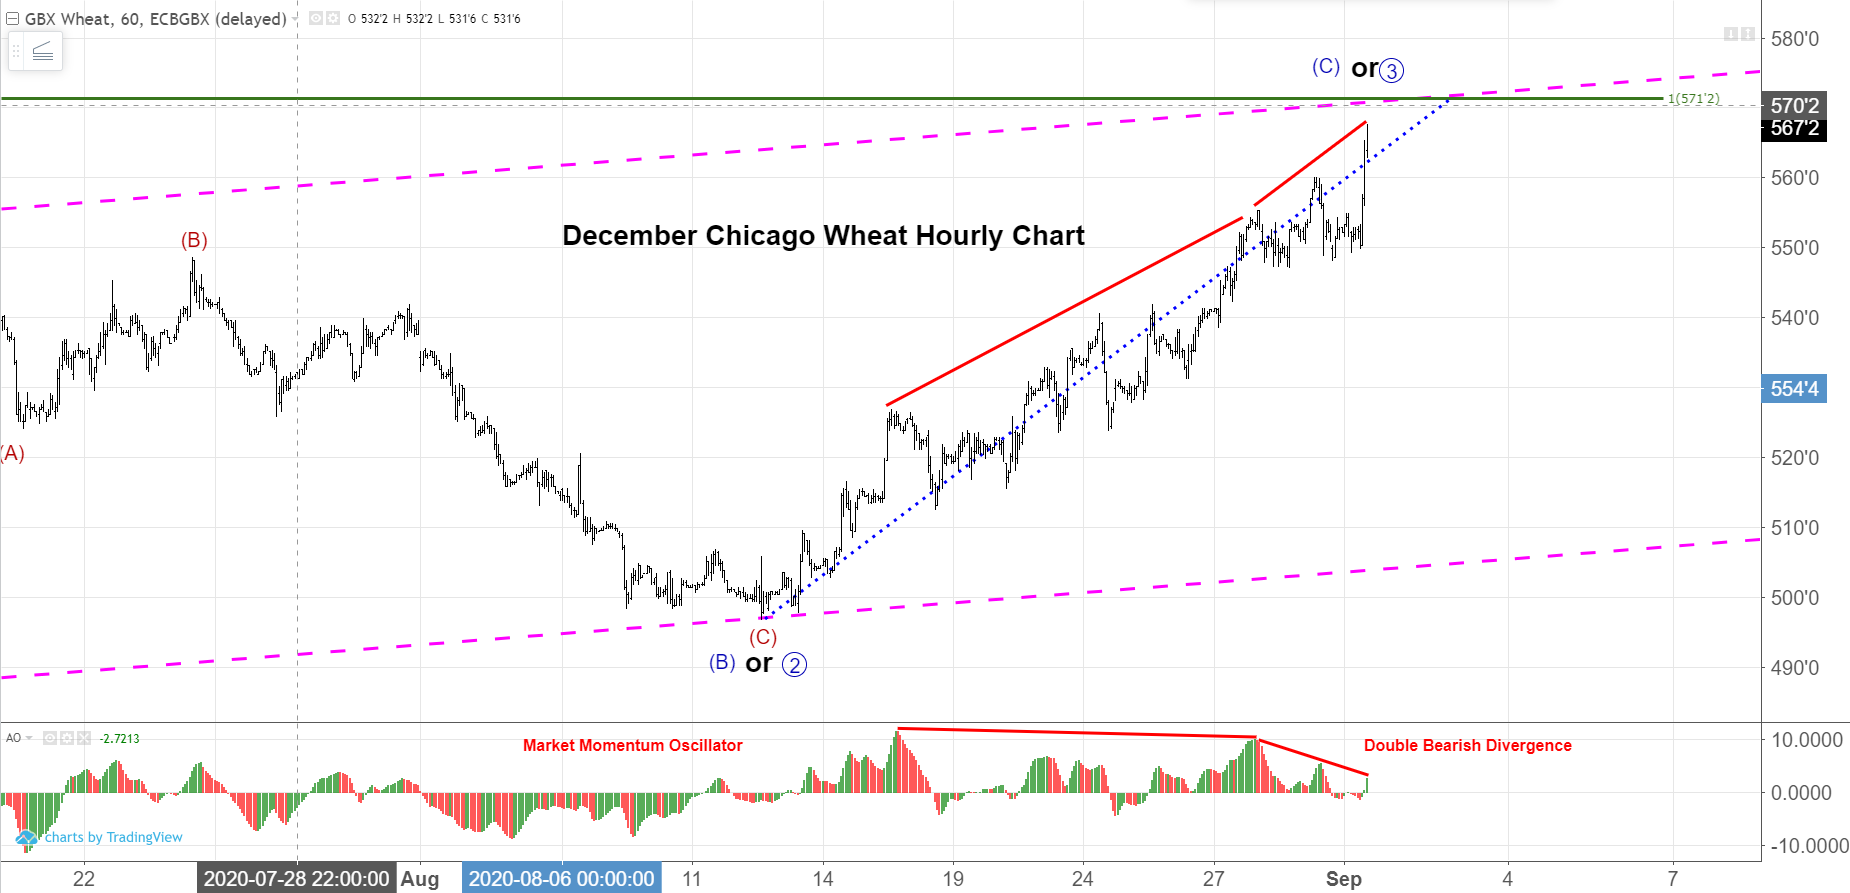 December Wheat Hourly Futures